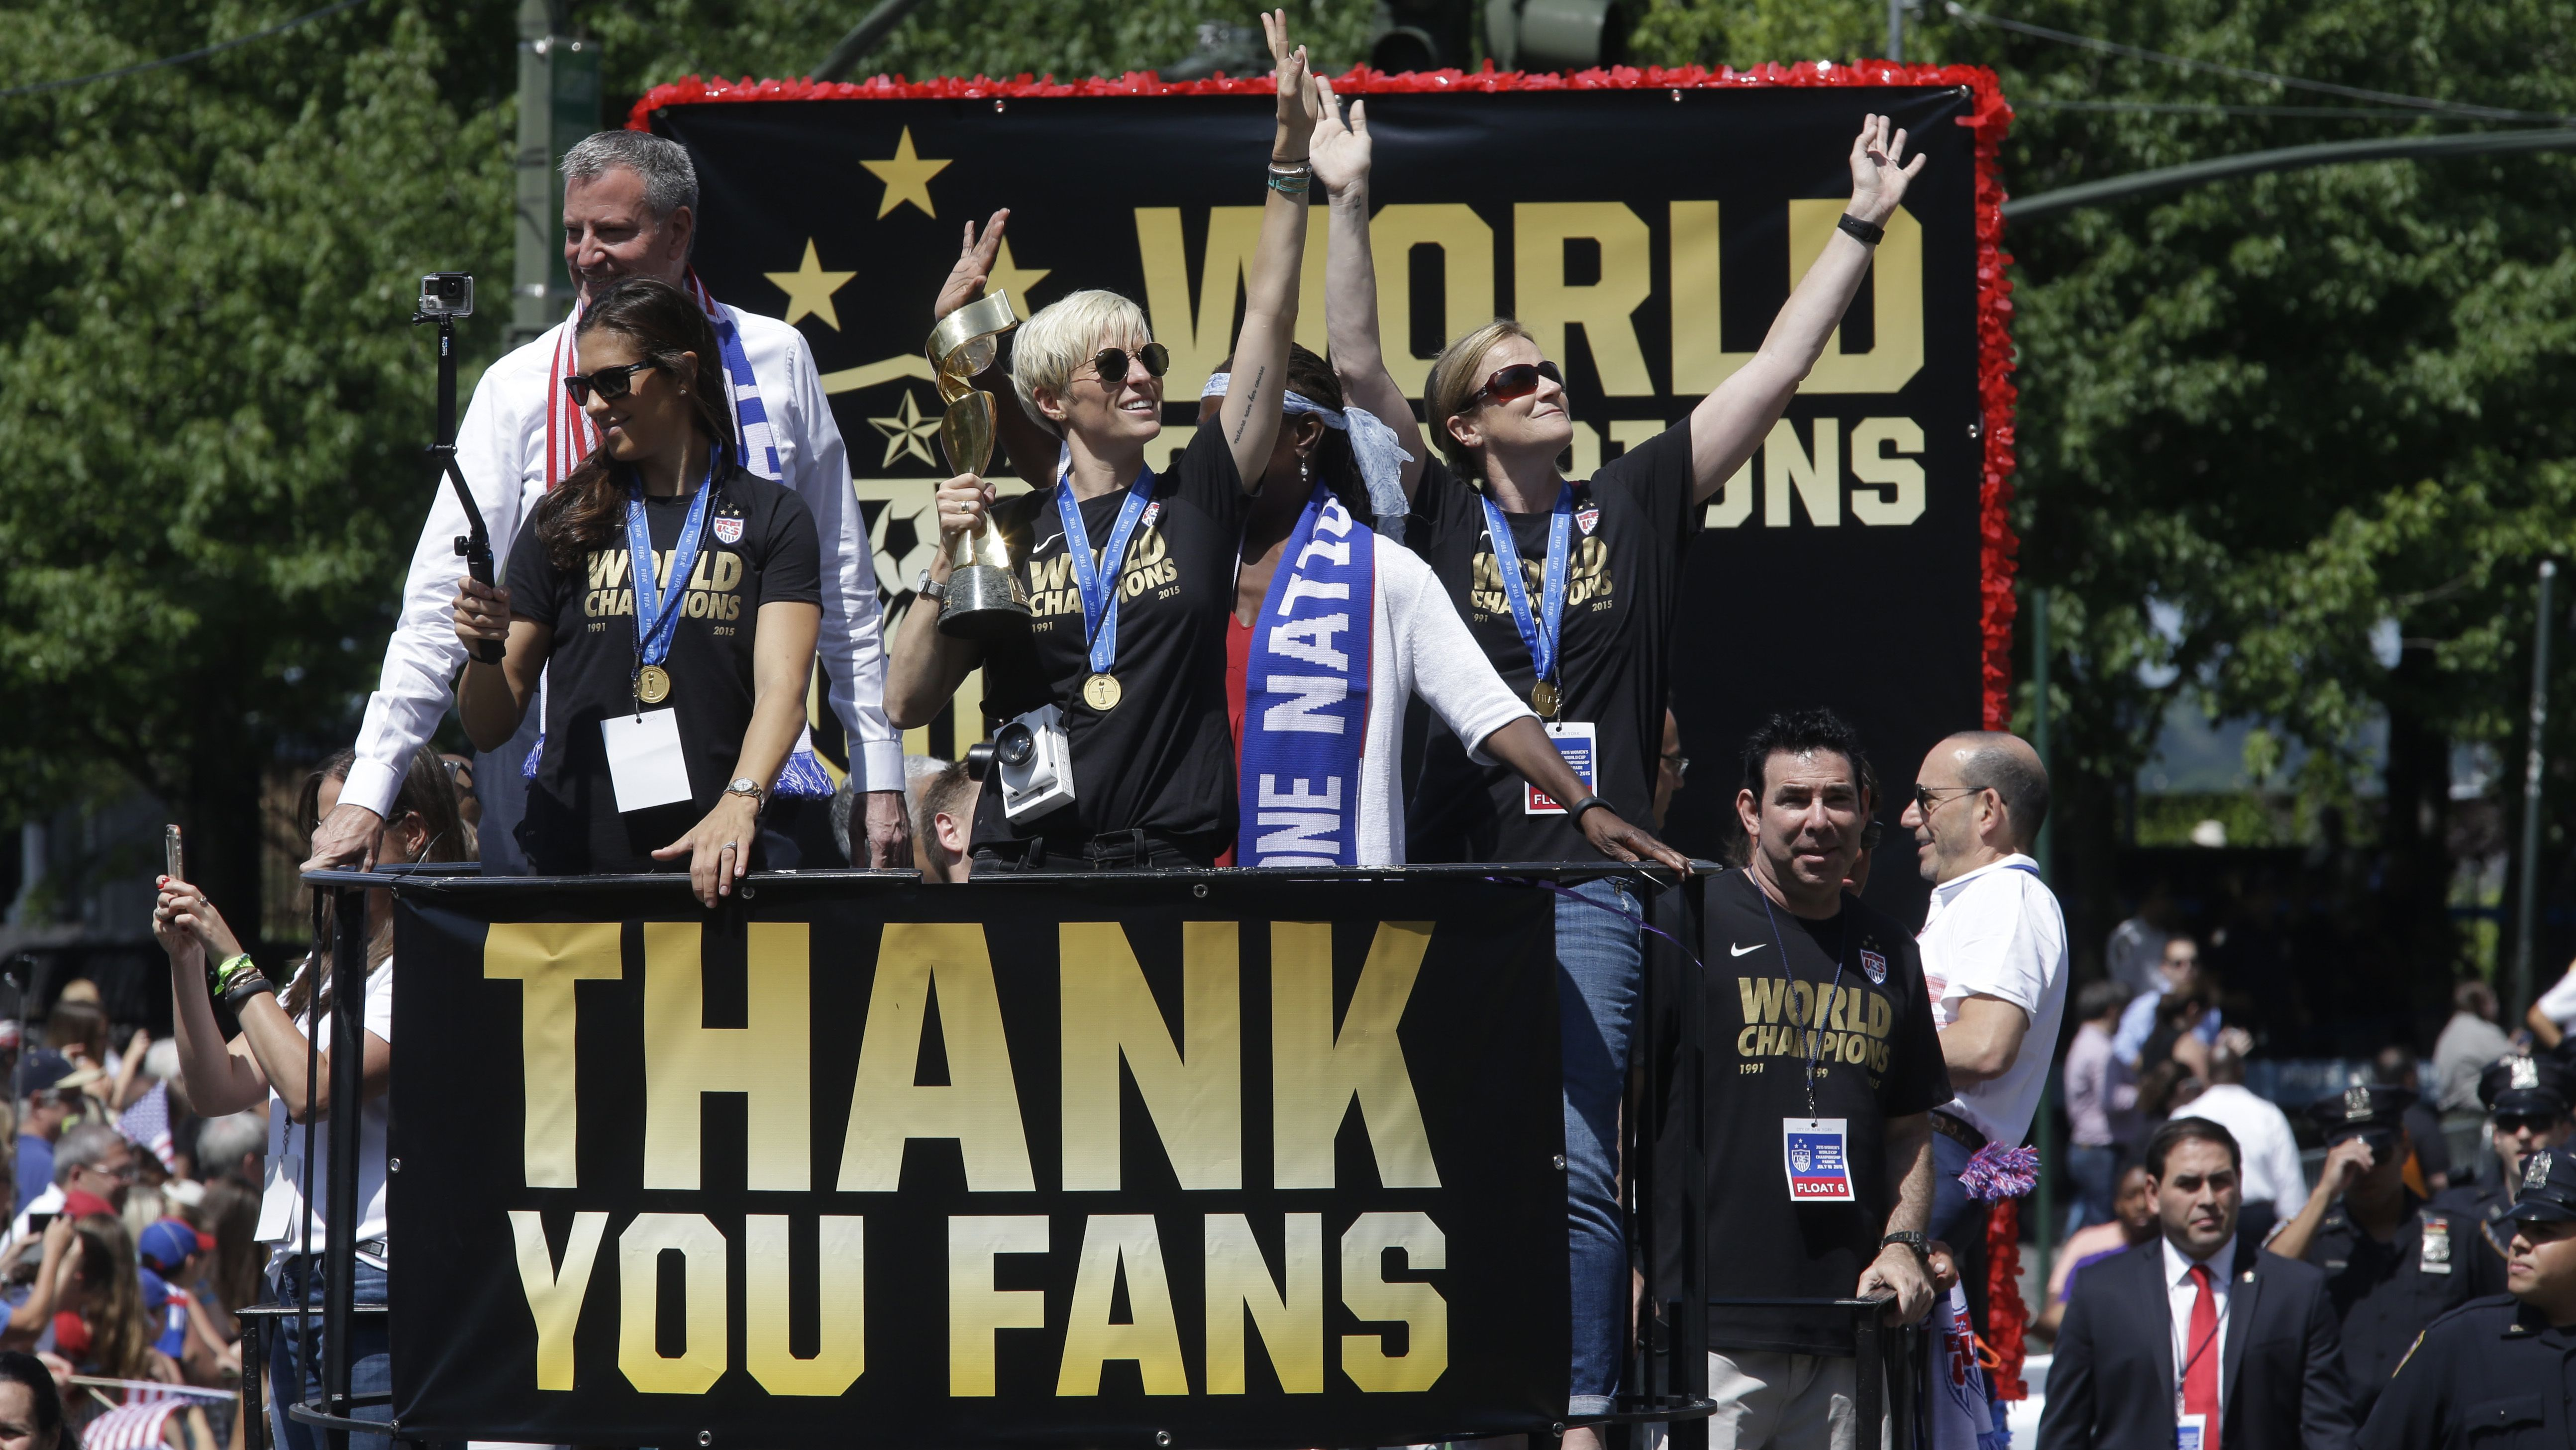 U.S. women's soccer team midfielder Megan Rapinoe, center, holds up the World Cup trophy while midfielder Carli Lloyd, left, New York City Mayor Bill de Blasio, left background, and head coach Jill Ellis, right, wave to the crowd as their float makes it way up Broadway's Canyon of Heroes during the ticker tape parade to celebrate the U.S. women's soccer team World Cup victory, Friday, July 10, 2015, in New York. (AP Photo/Mary Altaffer)